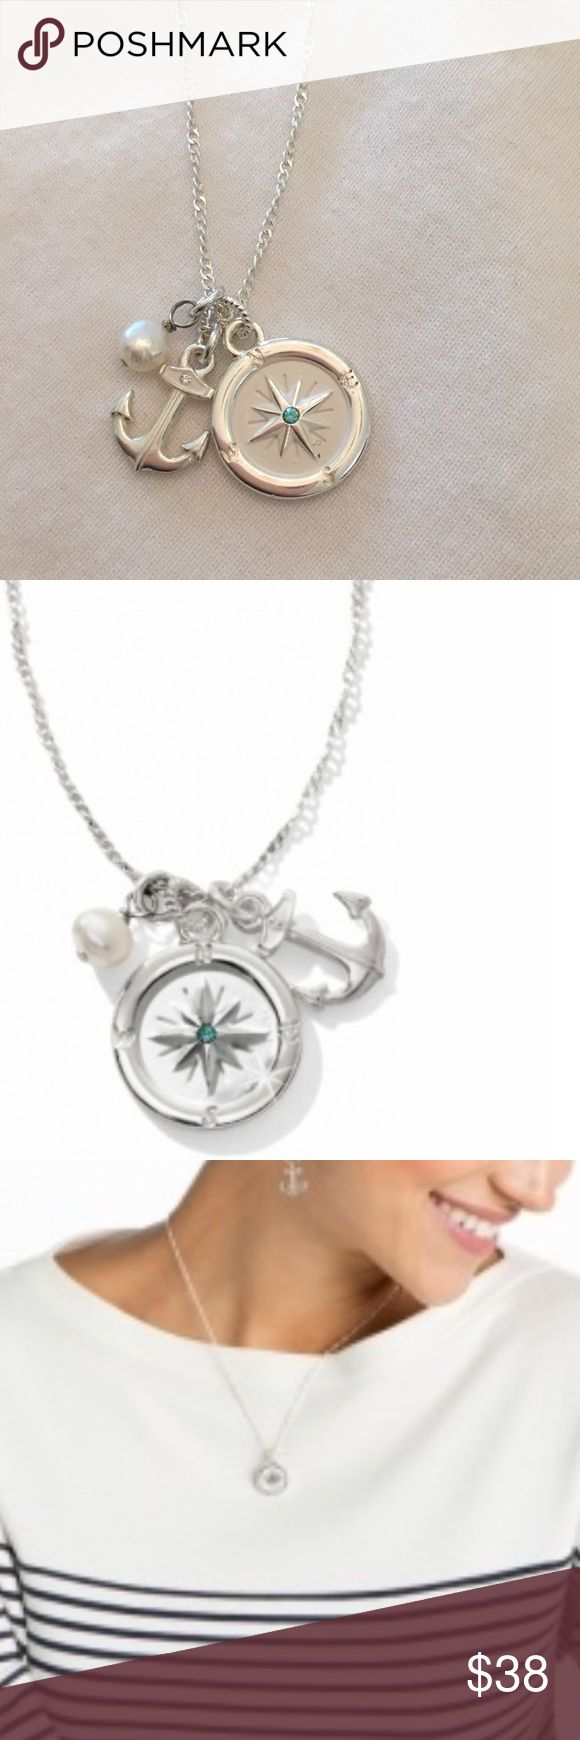 Indigo Compass Necklace Brighton Compass necklace is very pretty with an anchor and freshwater pearl. Brighton Jewelry Necklaces